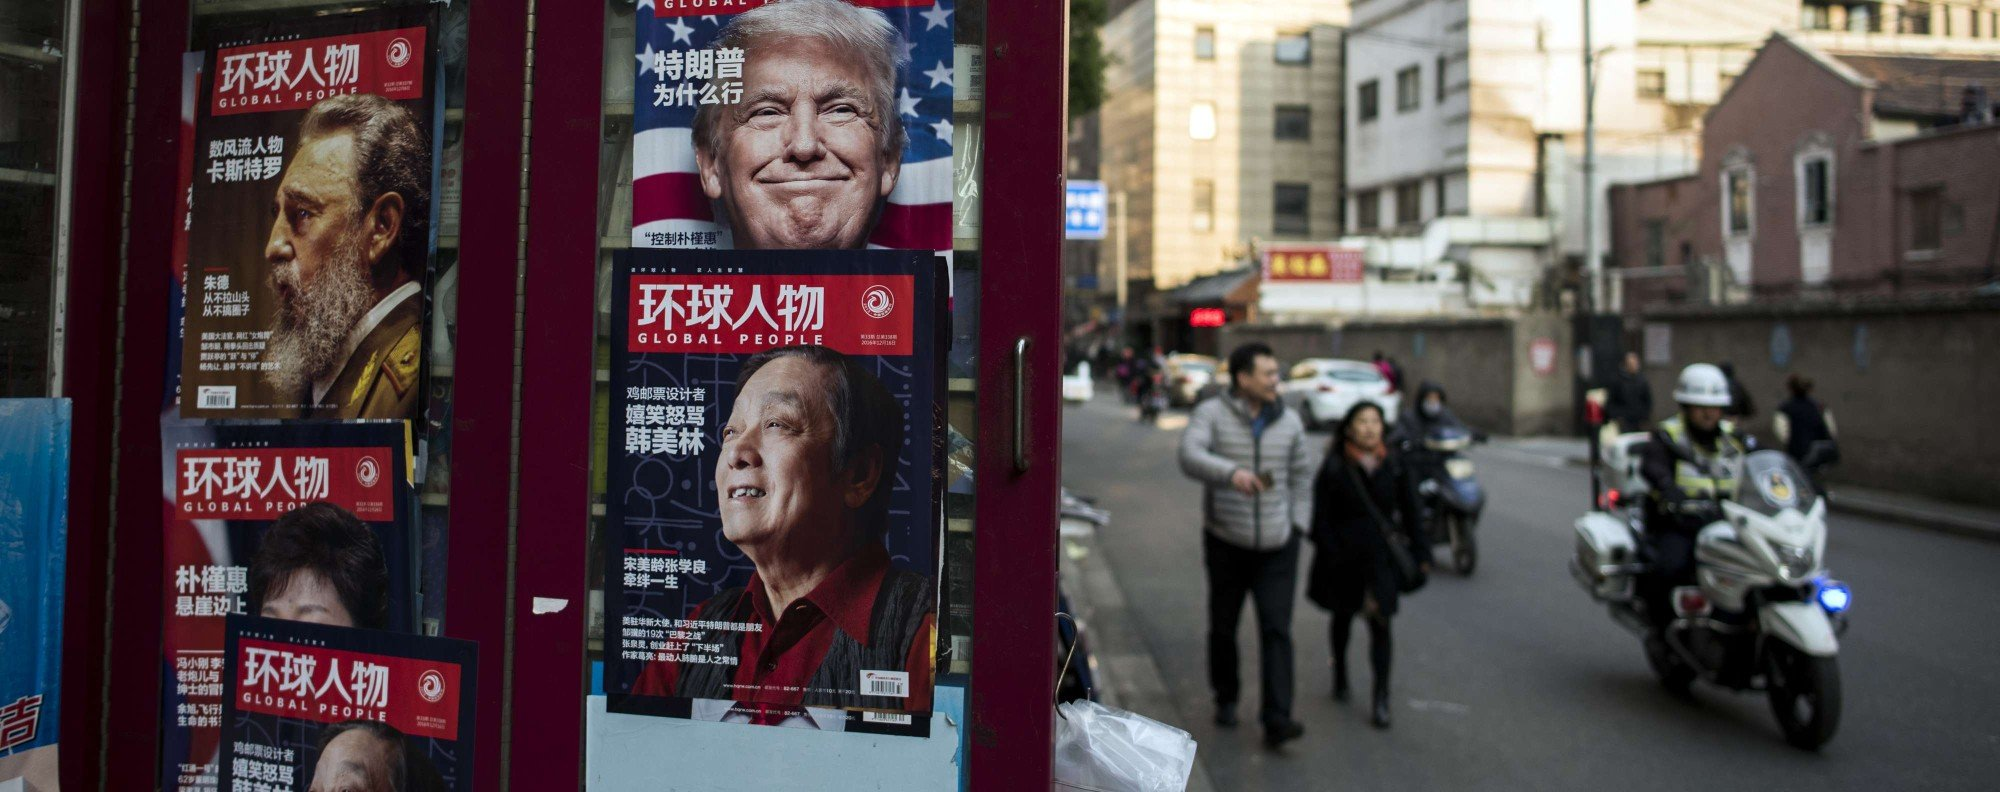 "This picture taken on December 14, 2016 shows a advertisement for a magazine (top R) featuring US President-elect Donald Trump on the cover at a news stand in Shanghai. China said on December 17 it would return a US naval probe seized in international waters, as it slammed the ""hyping"" of the incident as ""inappropriate and unhelpful"". The incident comes amid escalating tensions between China and the United States, with Trump repeatedly infuriating Beijing by questioning longstanding US policy on Taiwan, calling Beijing a currency manipulator and threatening Chinese imports with punitive tariffs. / AFP PHOTO / Johannes EISELE"